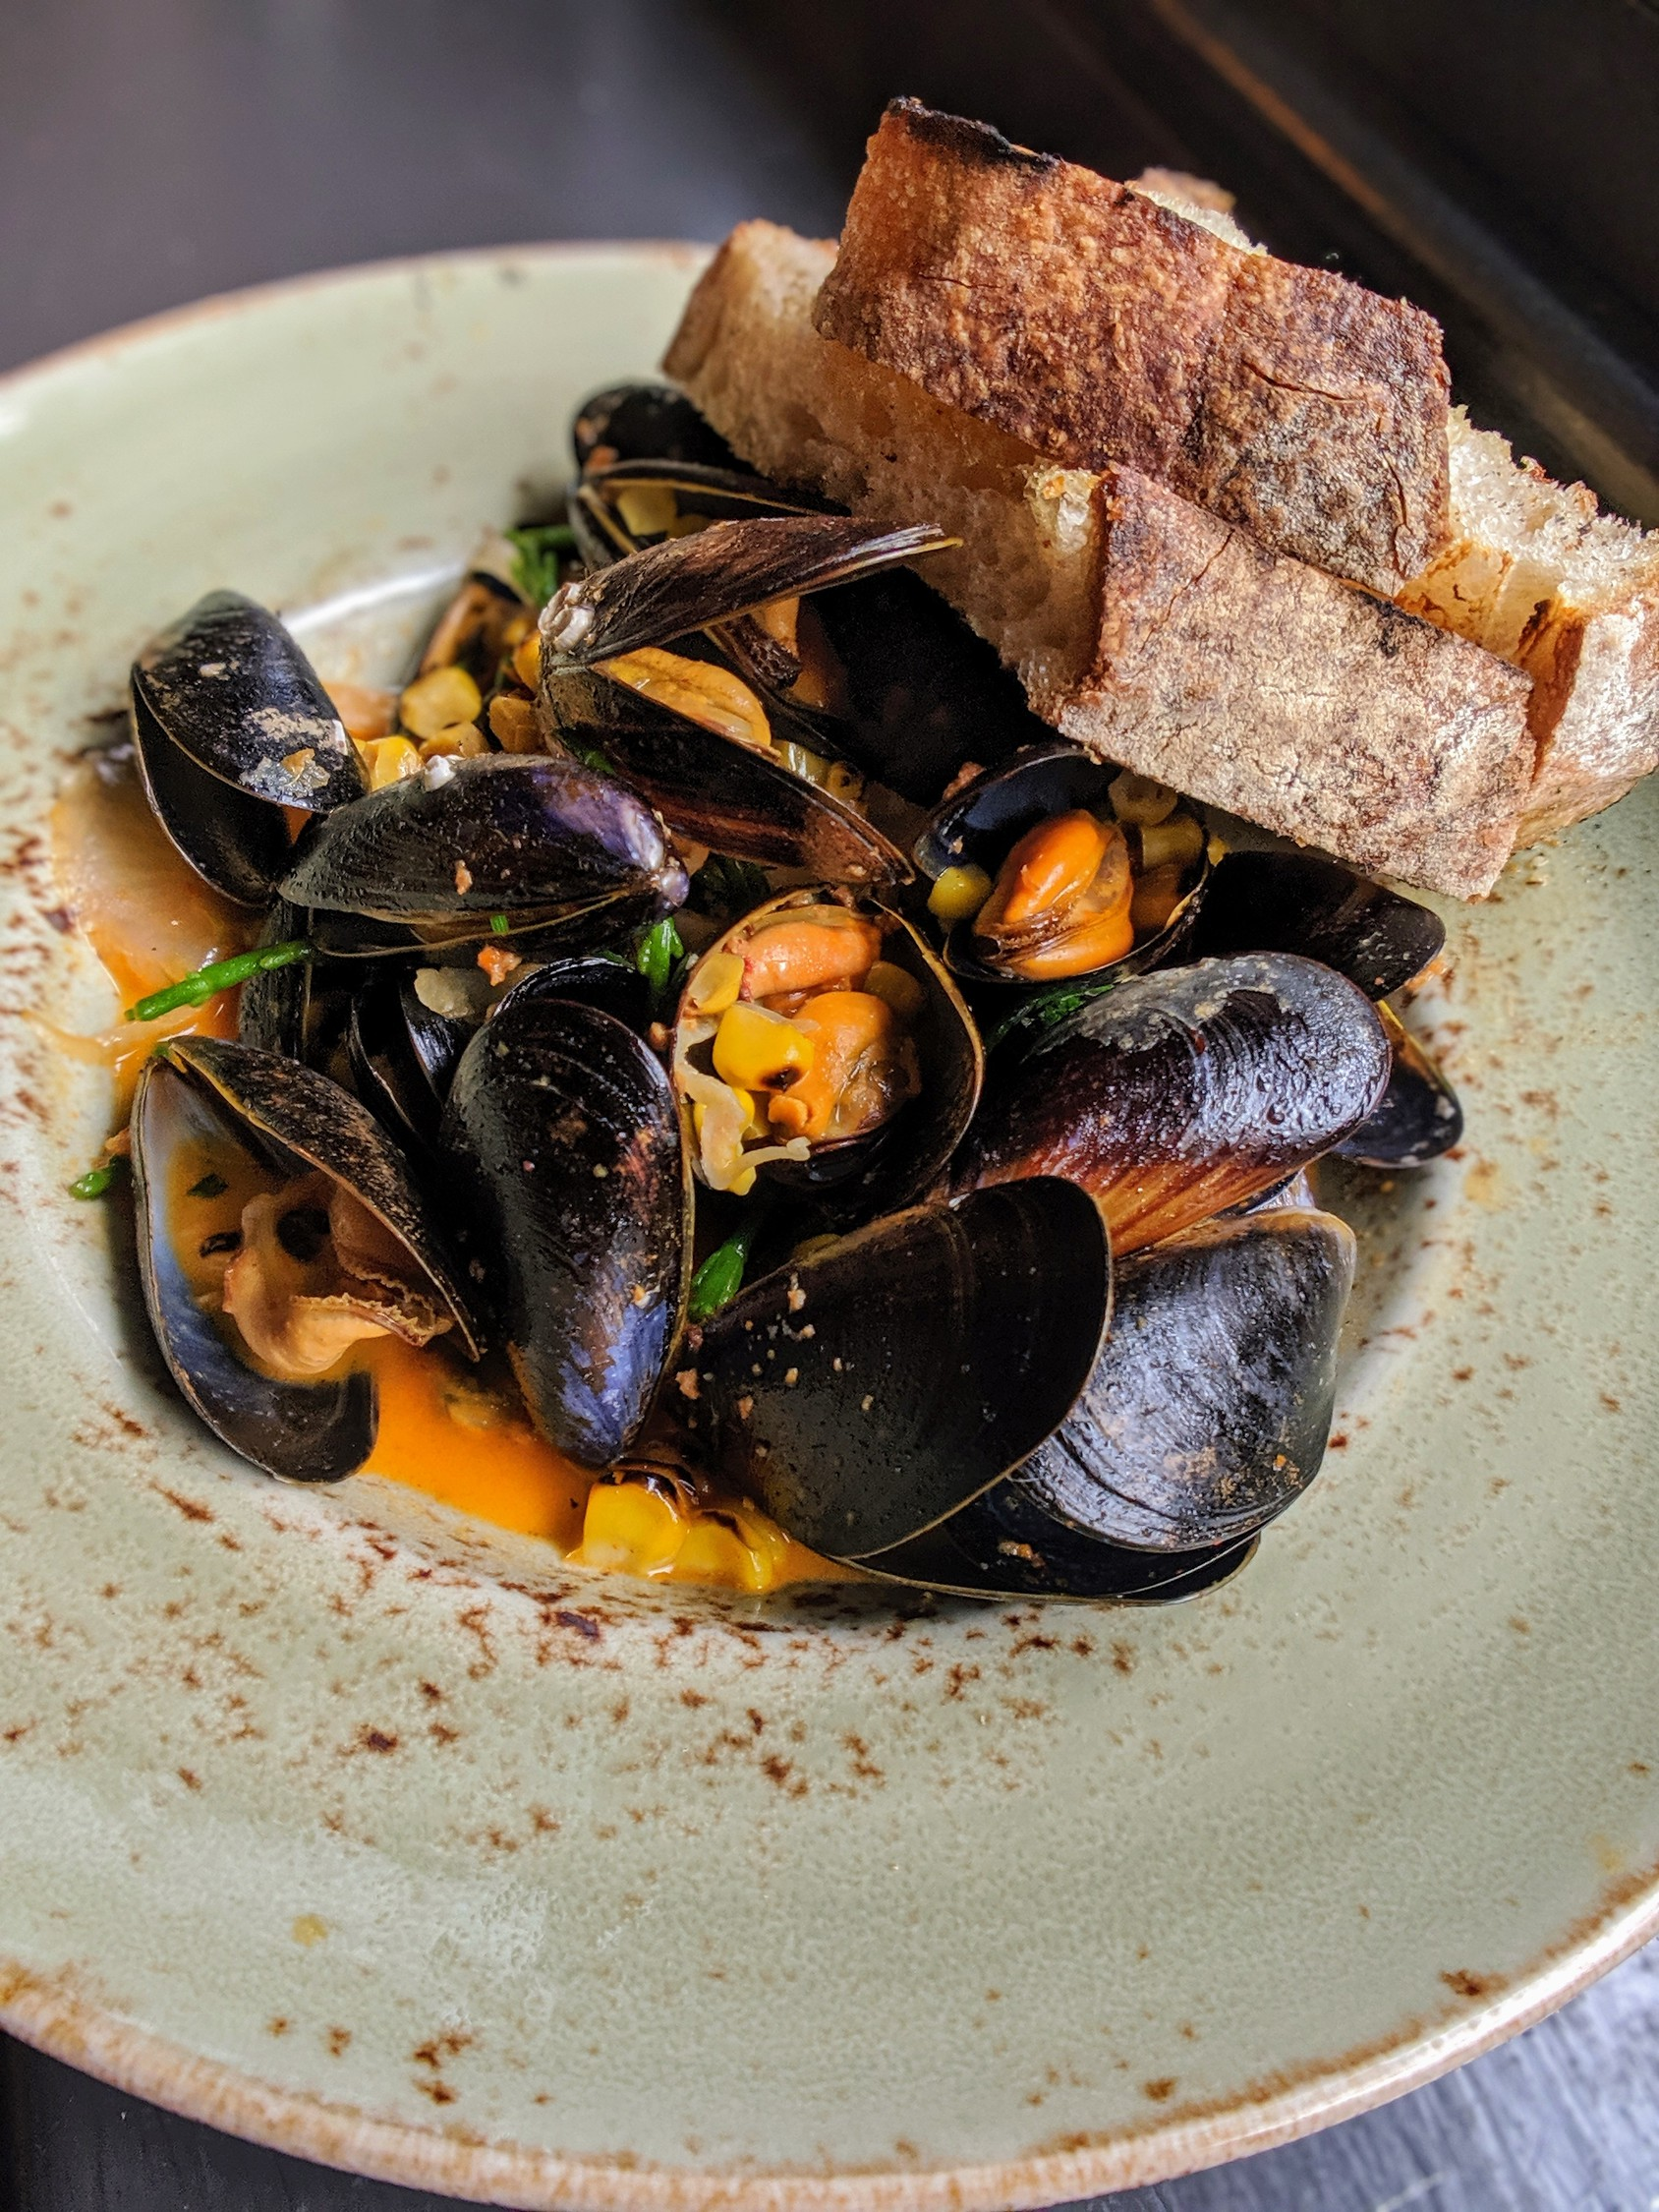 Mussels with nduja, sweet corn and sourdough bread at Pichet in Dublin Ireland